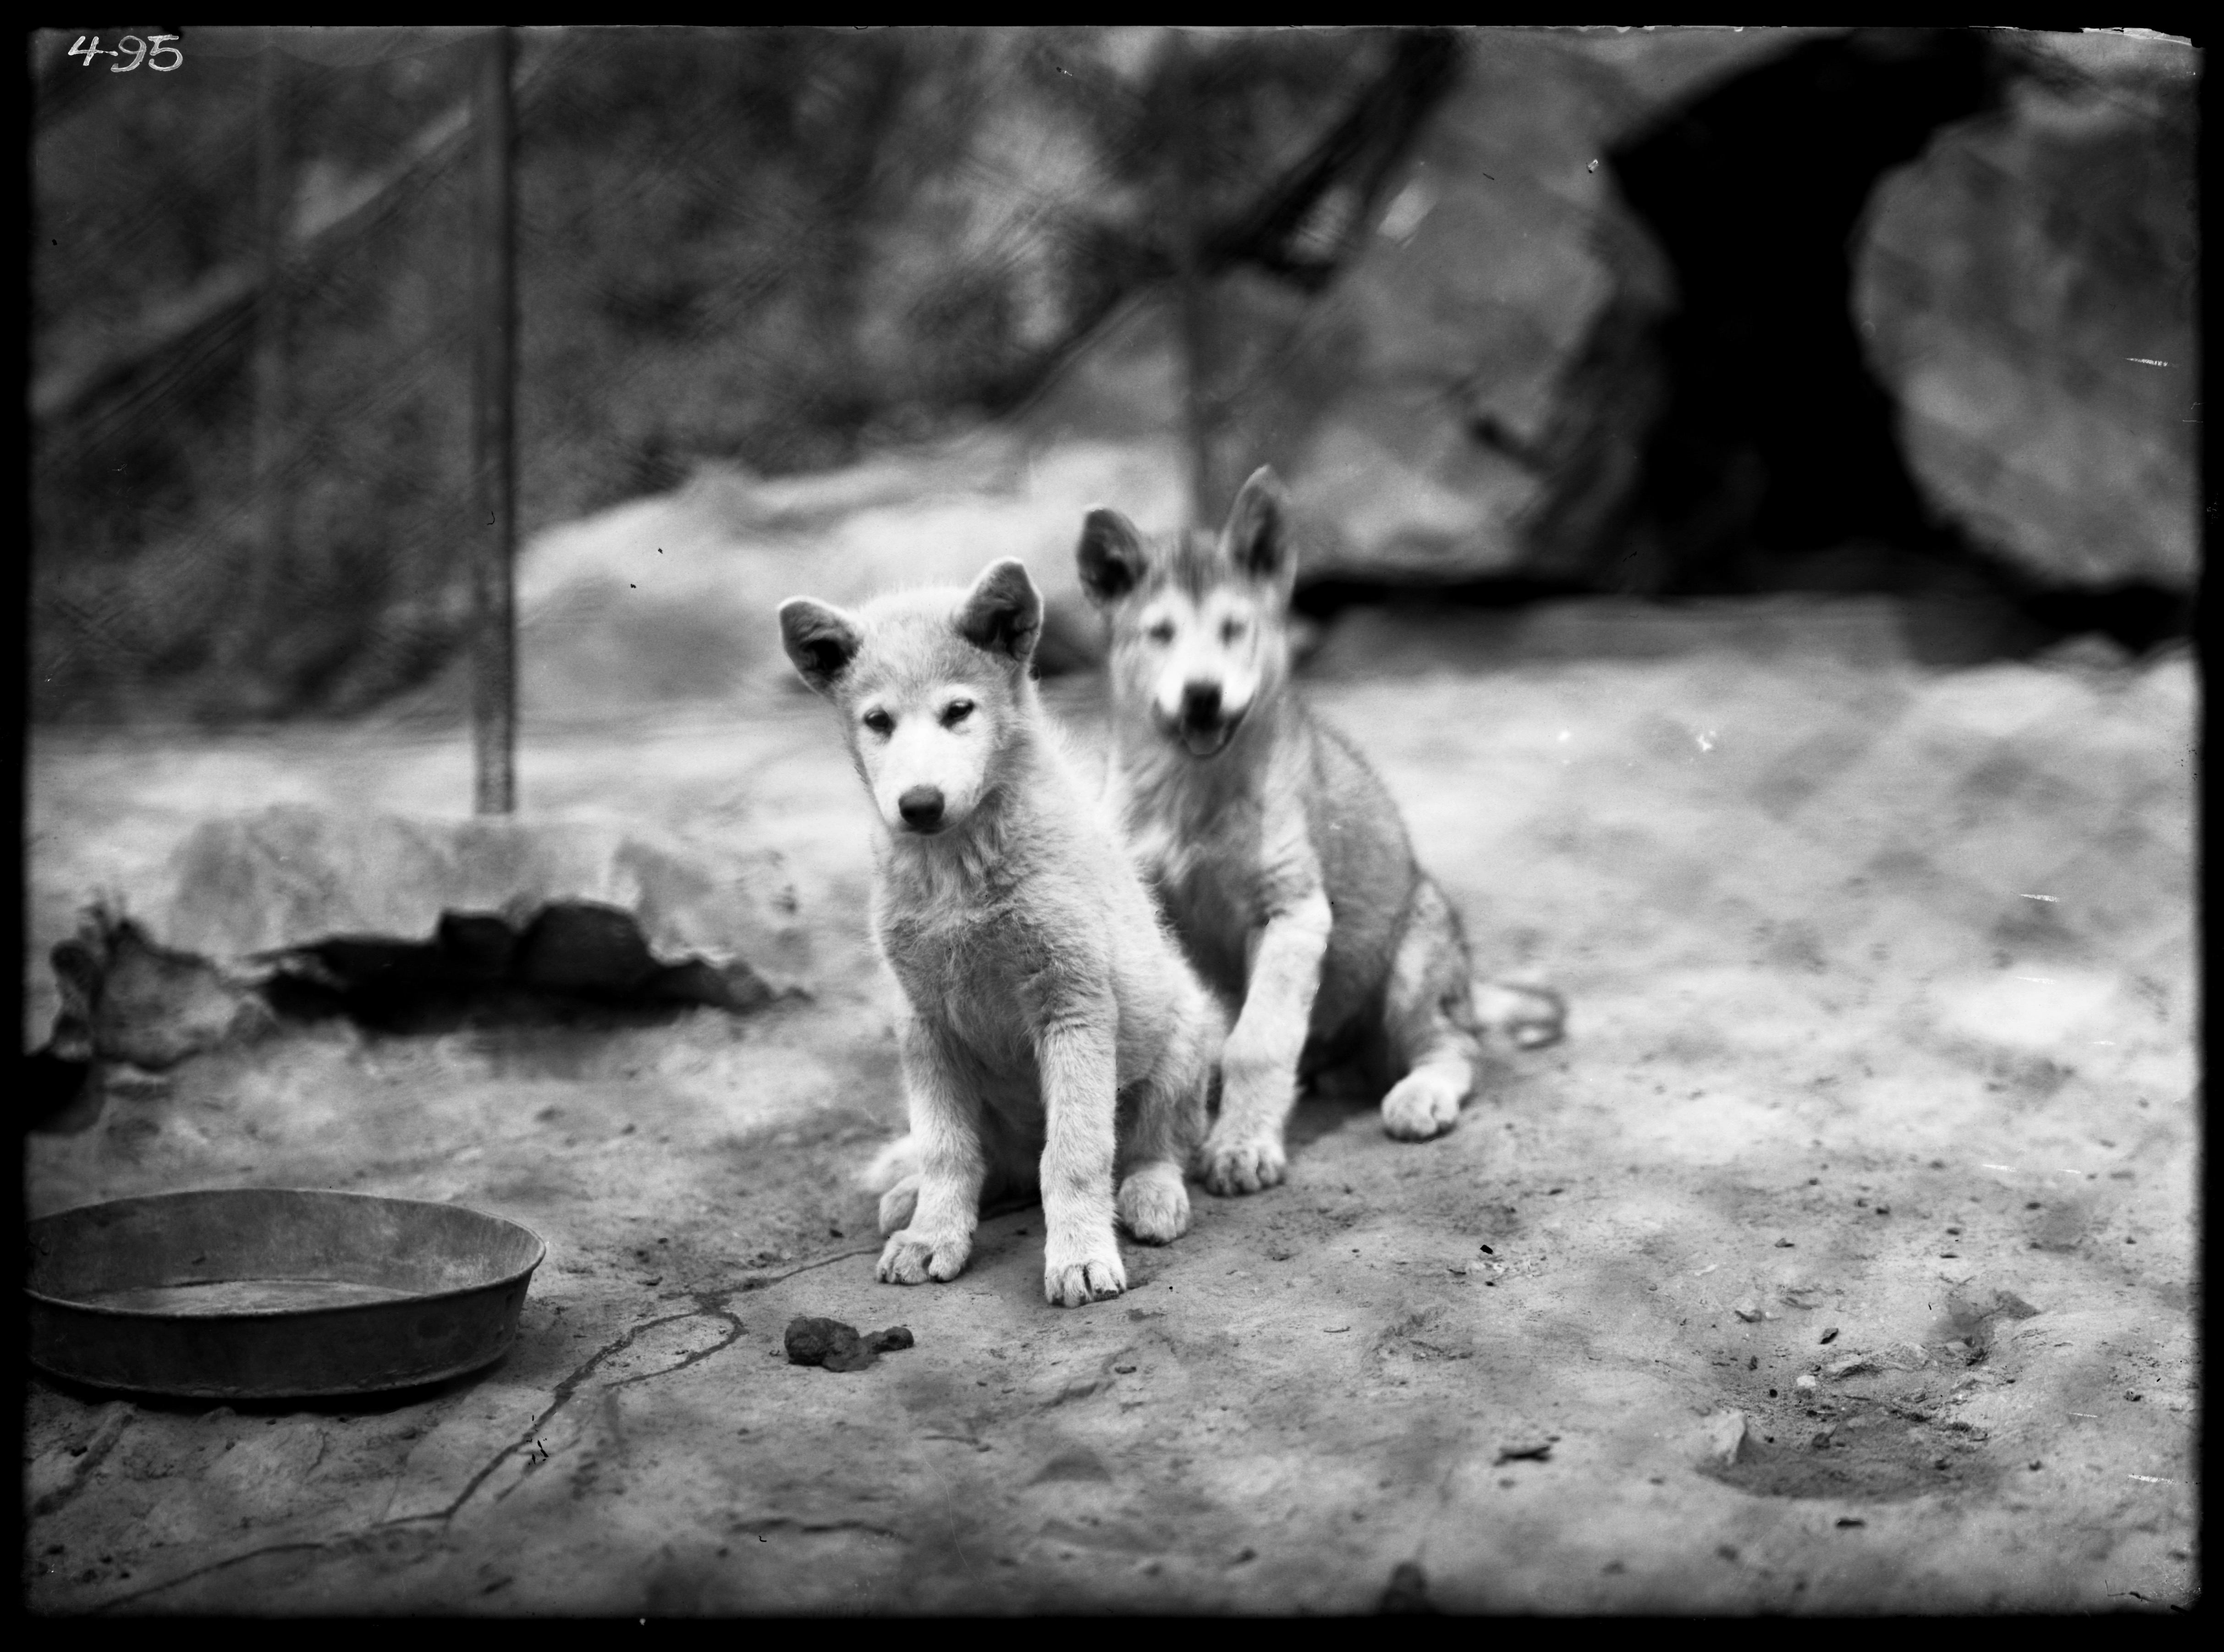 Black and white image of young dogs sitting.